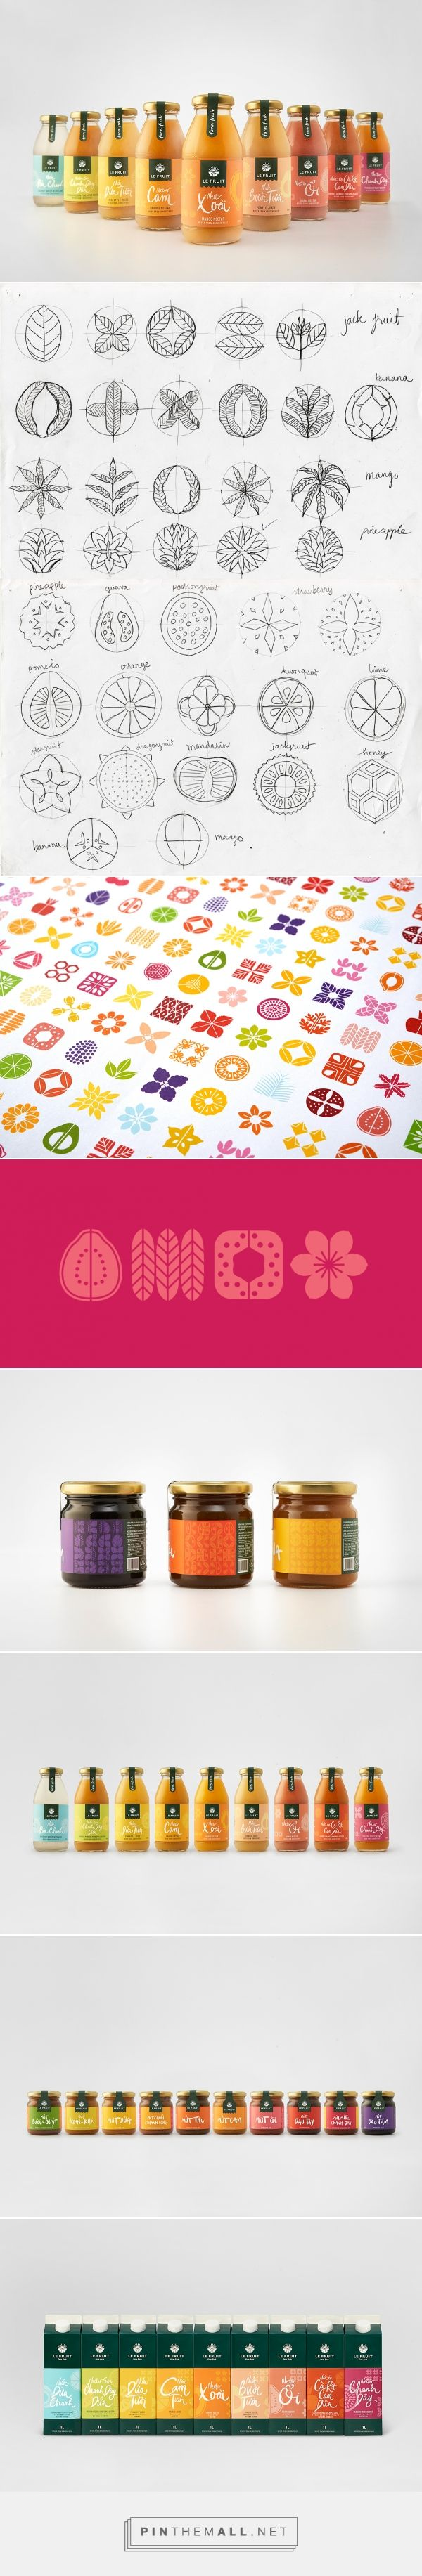 Fruit splash story - Packaging Branding And Graphic Design For Le Fruit On Behance By Rice Creative Ho Chi